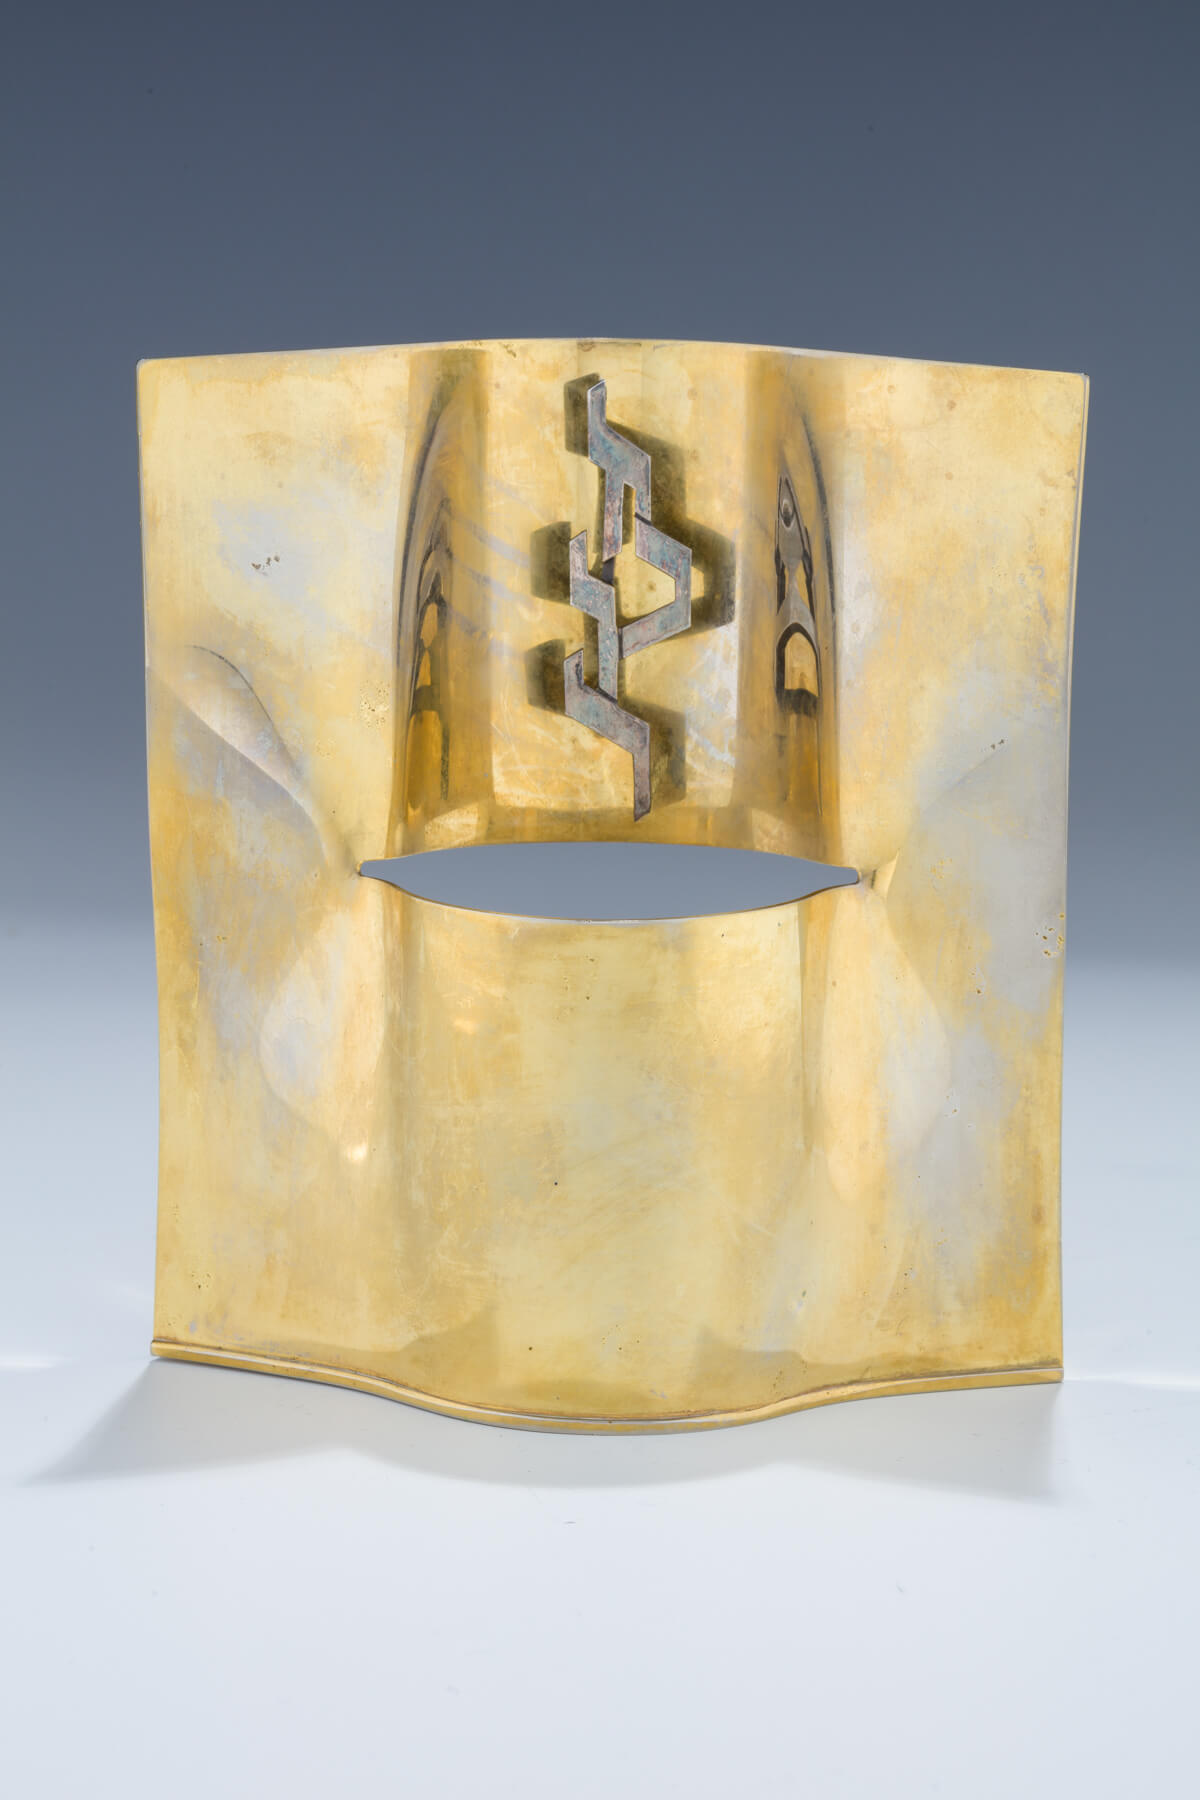 147. A Yarzheit Candle Holder by Zelig Segal